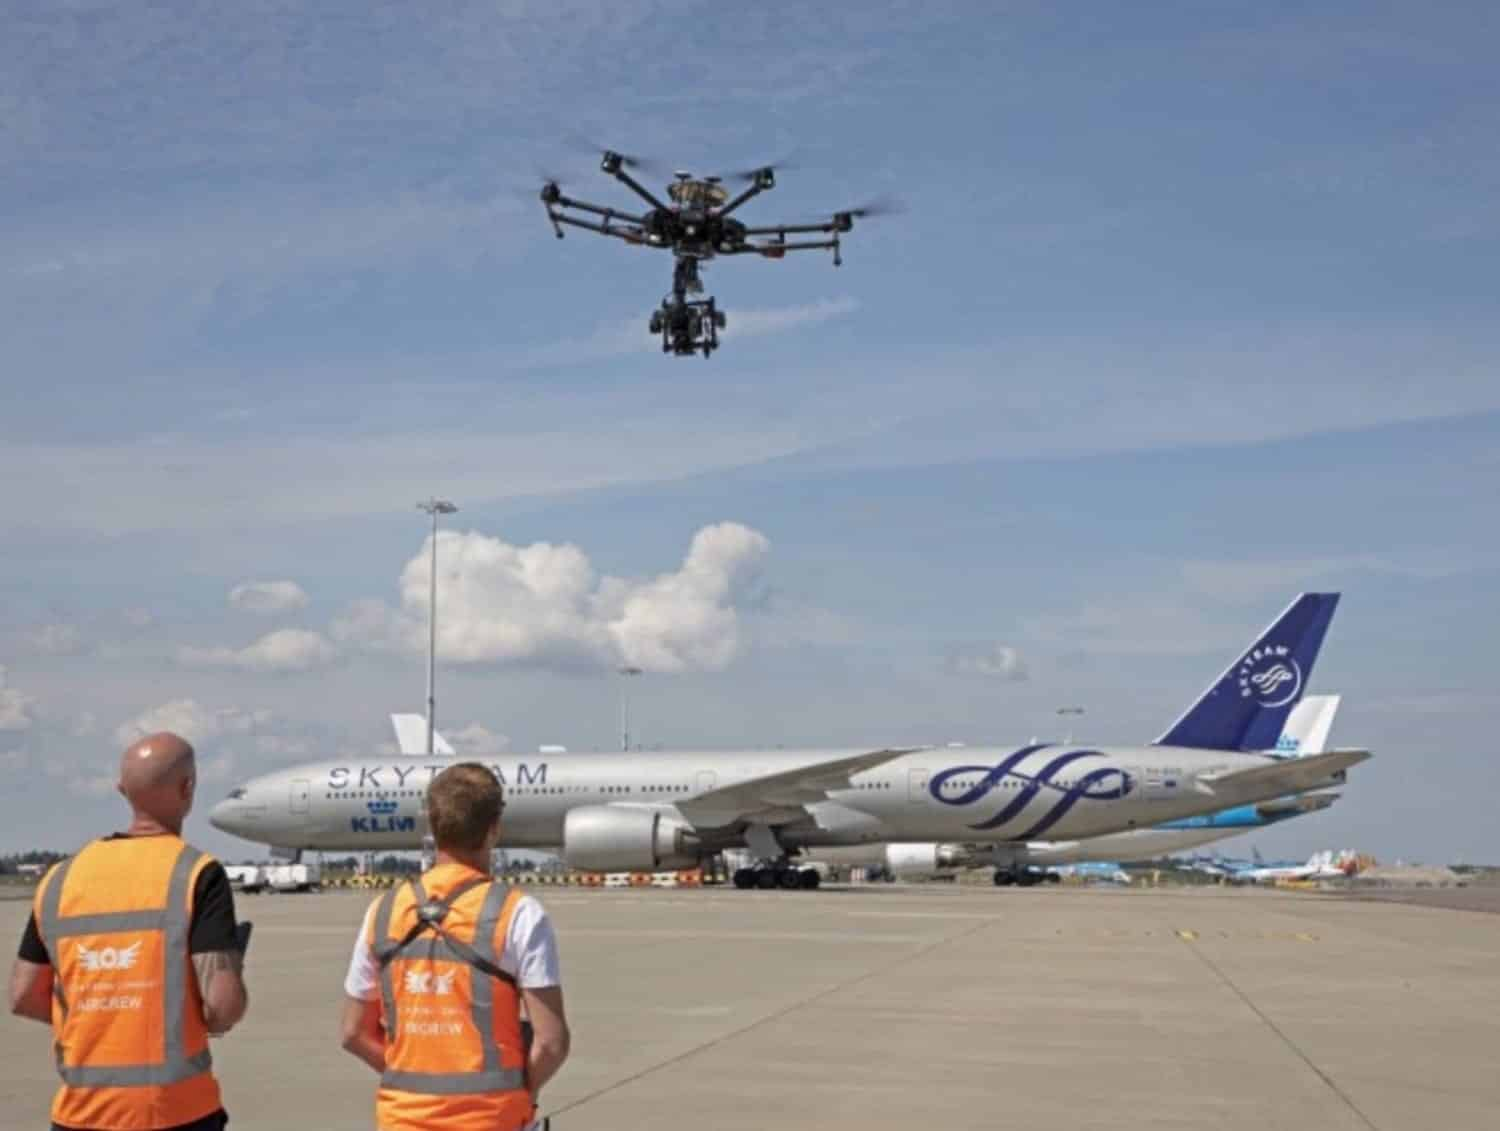 Schiphol Airport in Amsterdam begins trial with inspection drones